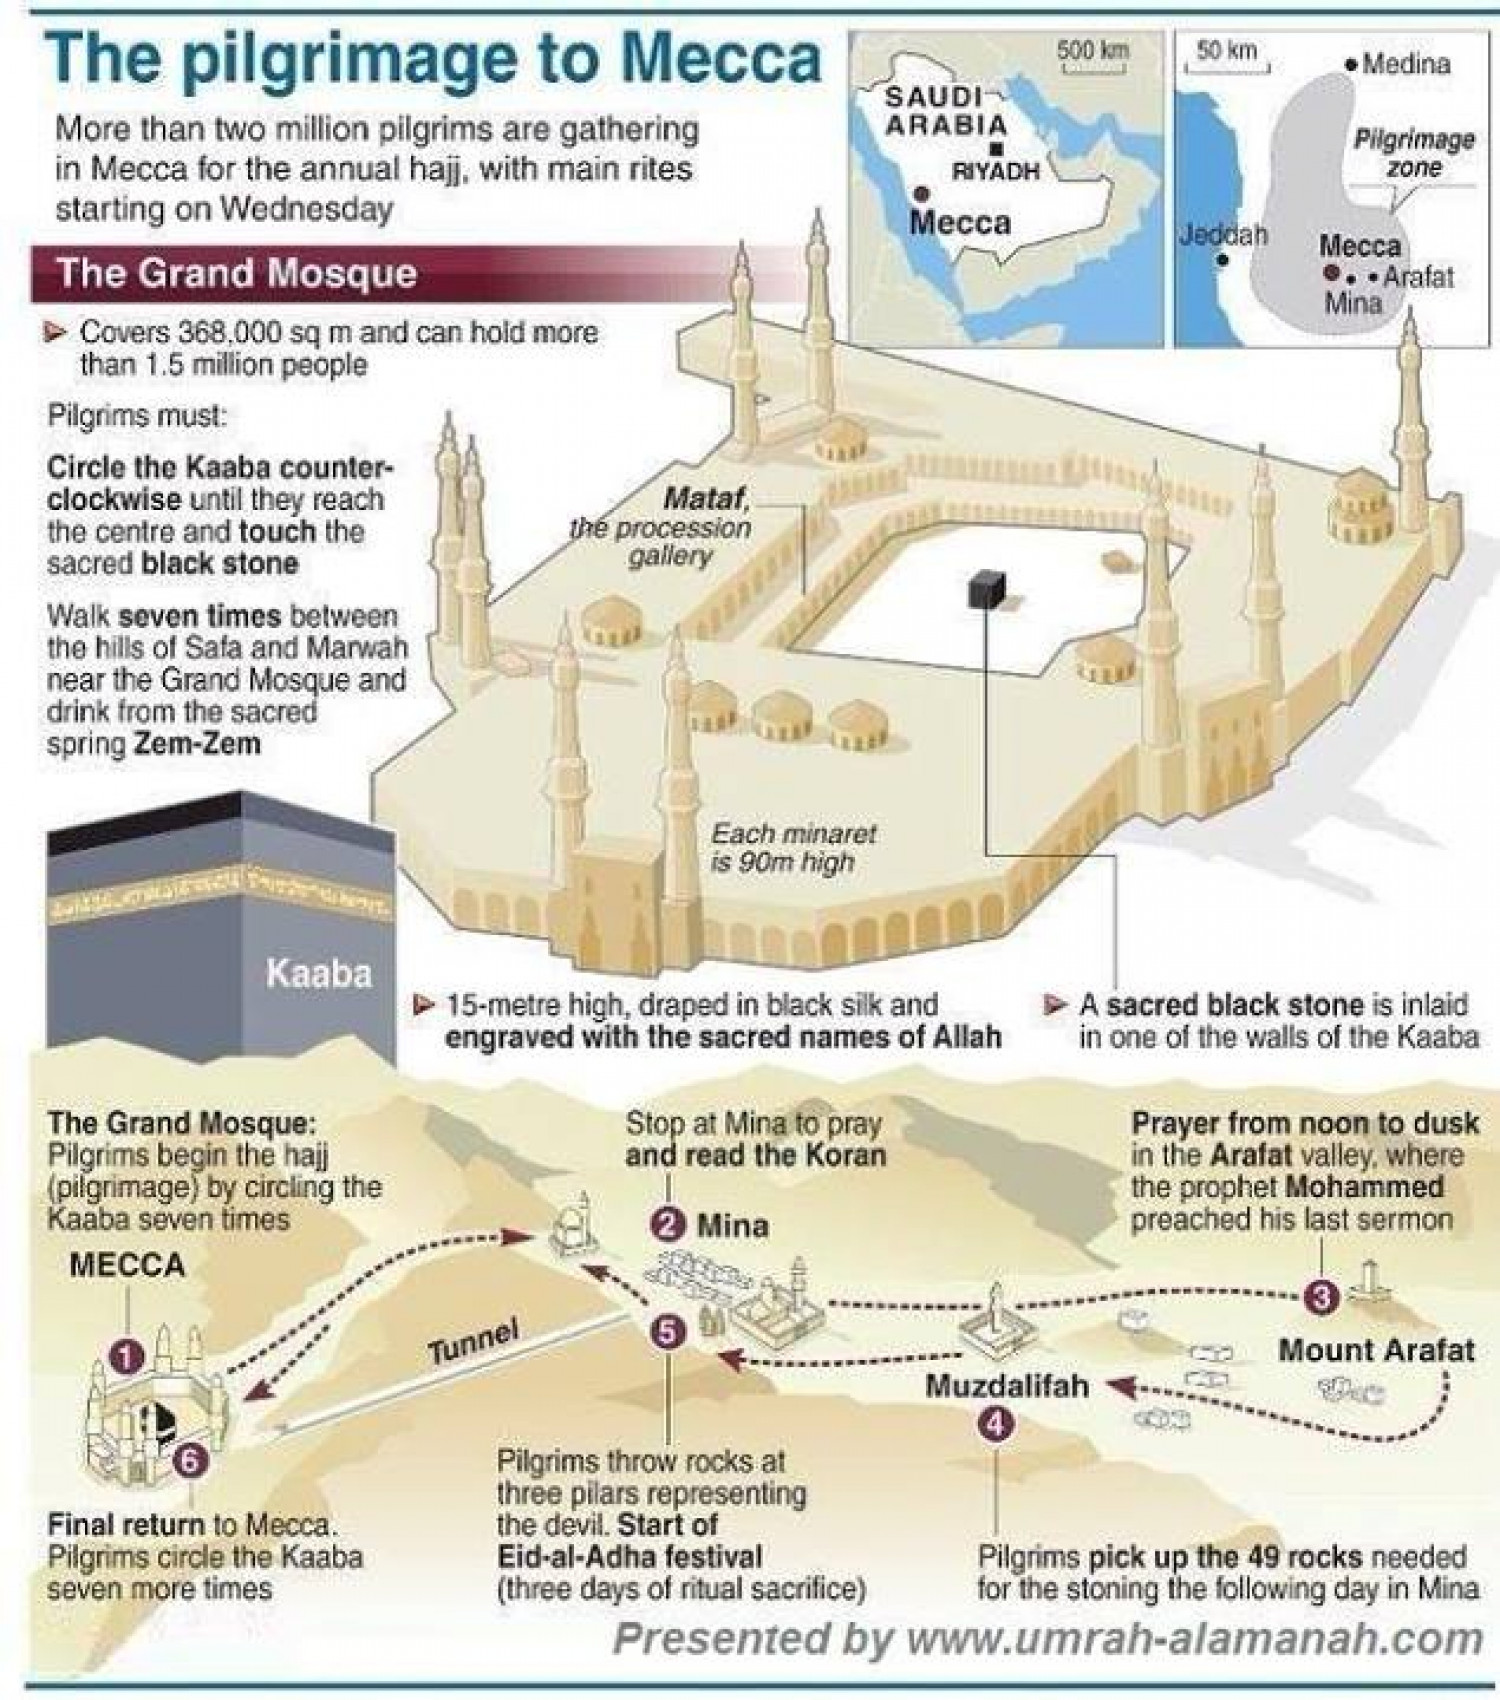 The Pilgrimage to Mecca Infographic